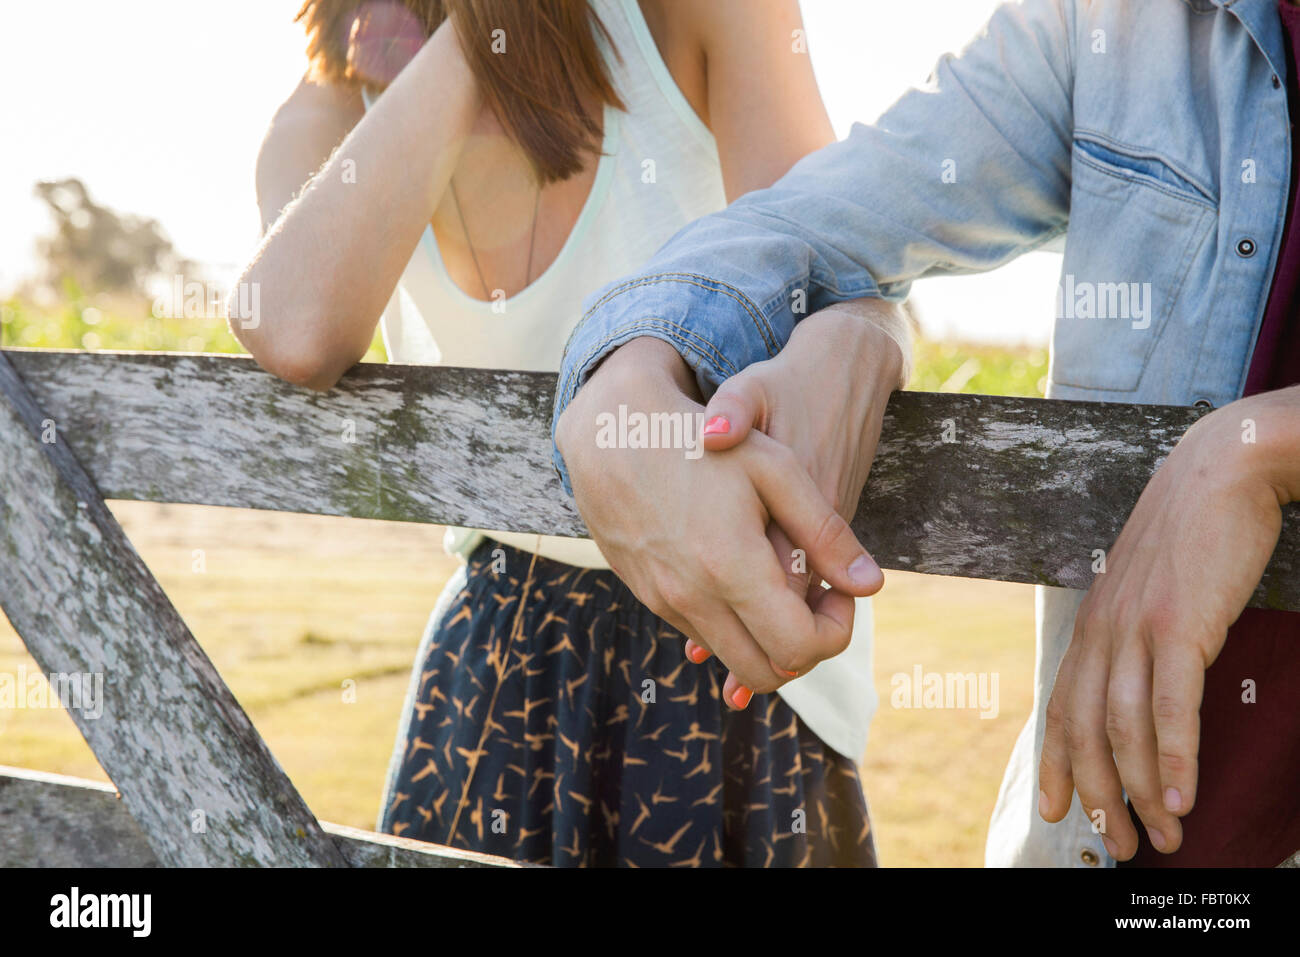 Young couple holding hands, close-up - Stock Image